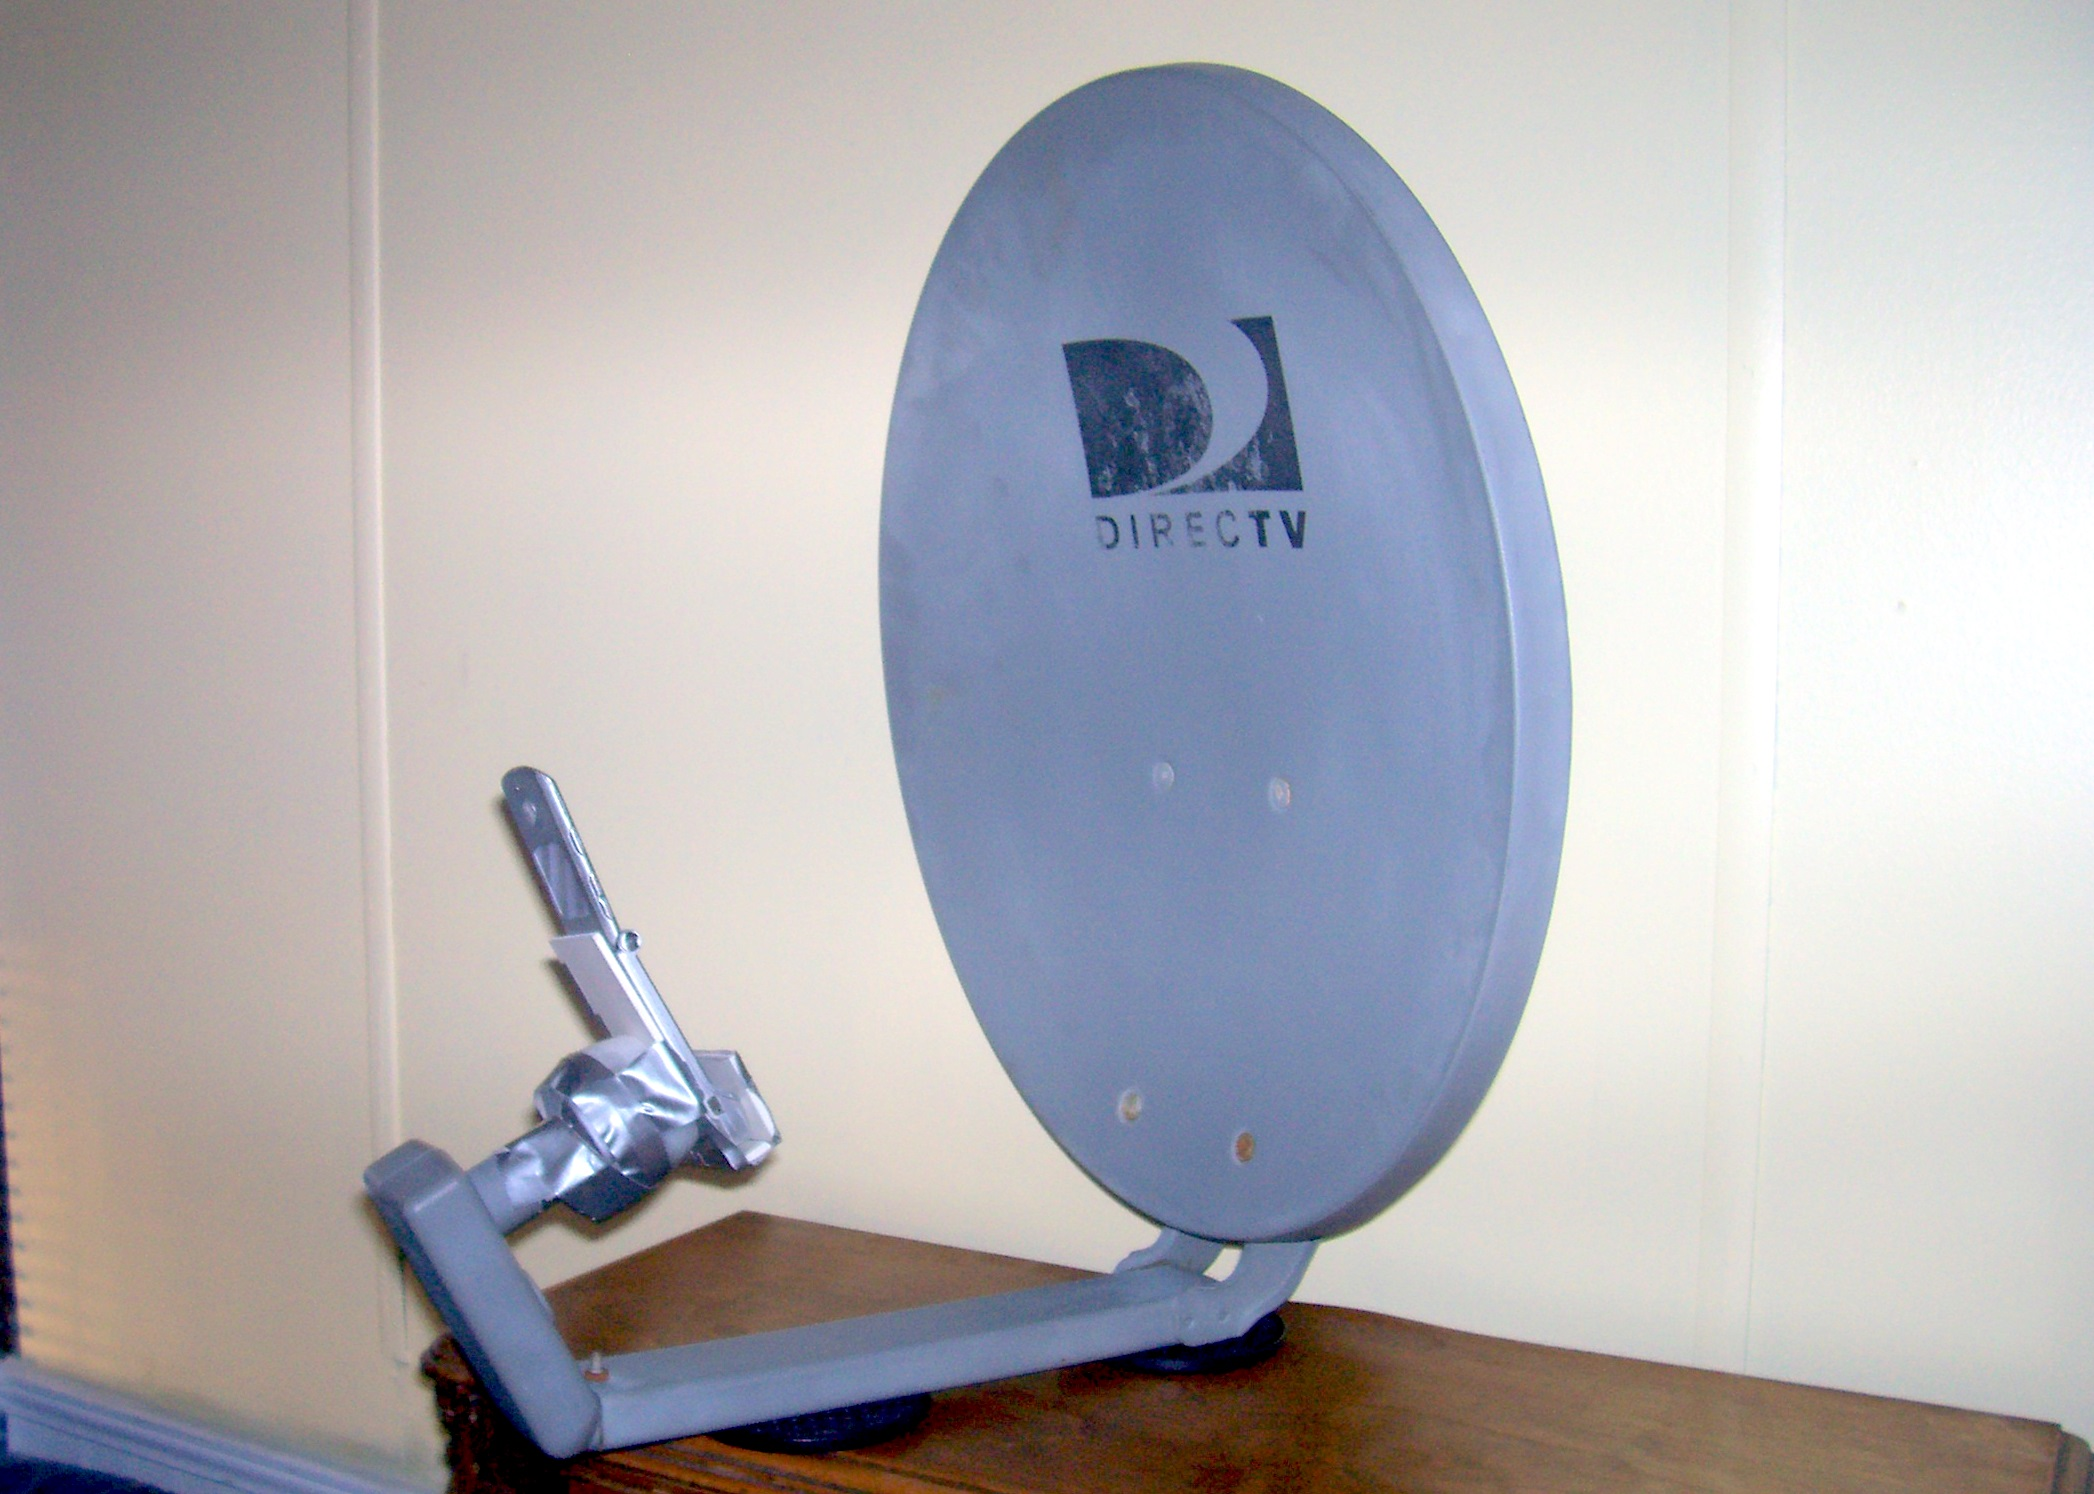 Repurposed Satellite Dish Antenna Captures Wi-Fi and Cell Phone